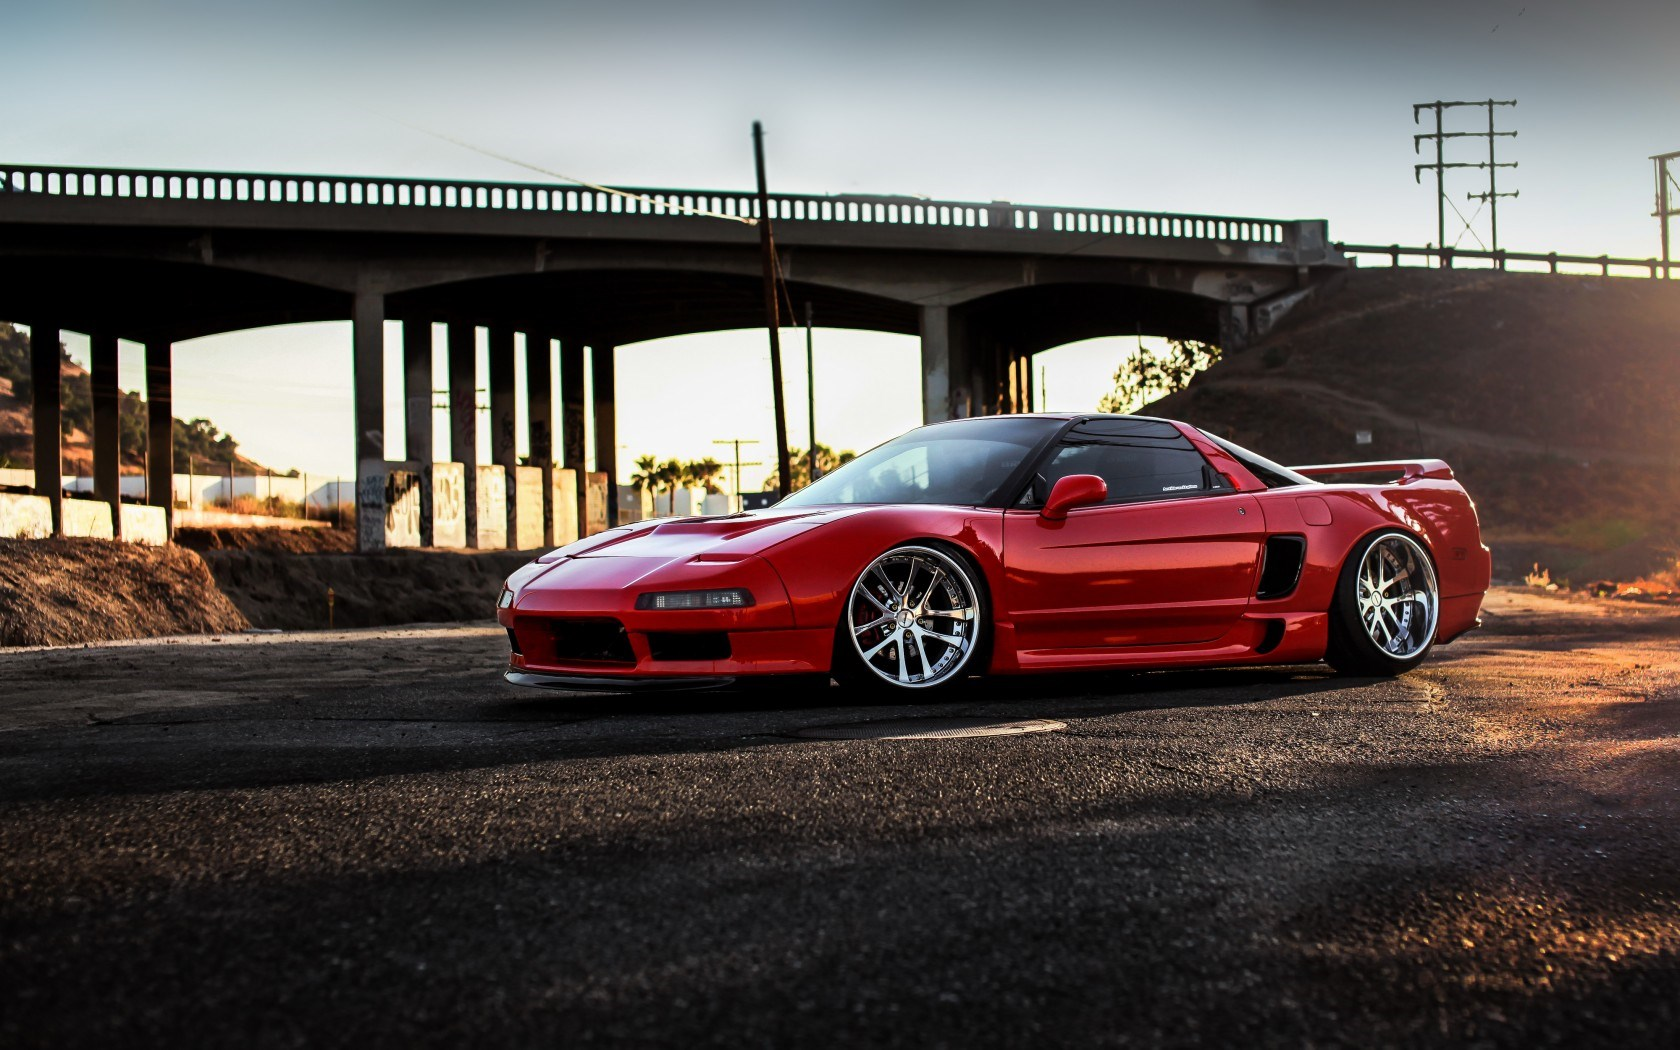 Honda Nsx Car Side Hd Wallpaper Wallpapers Style 1680x1050